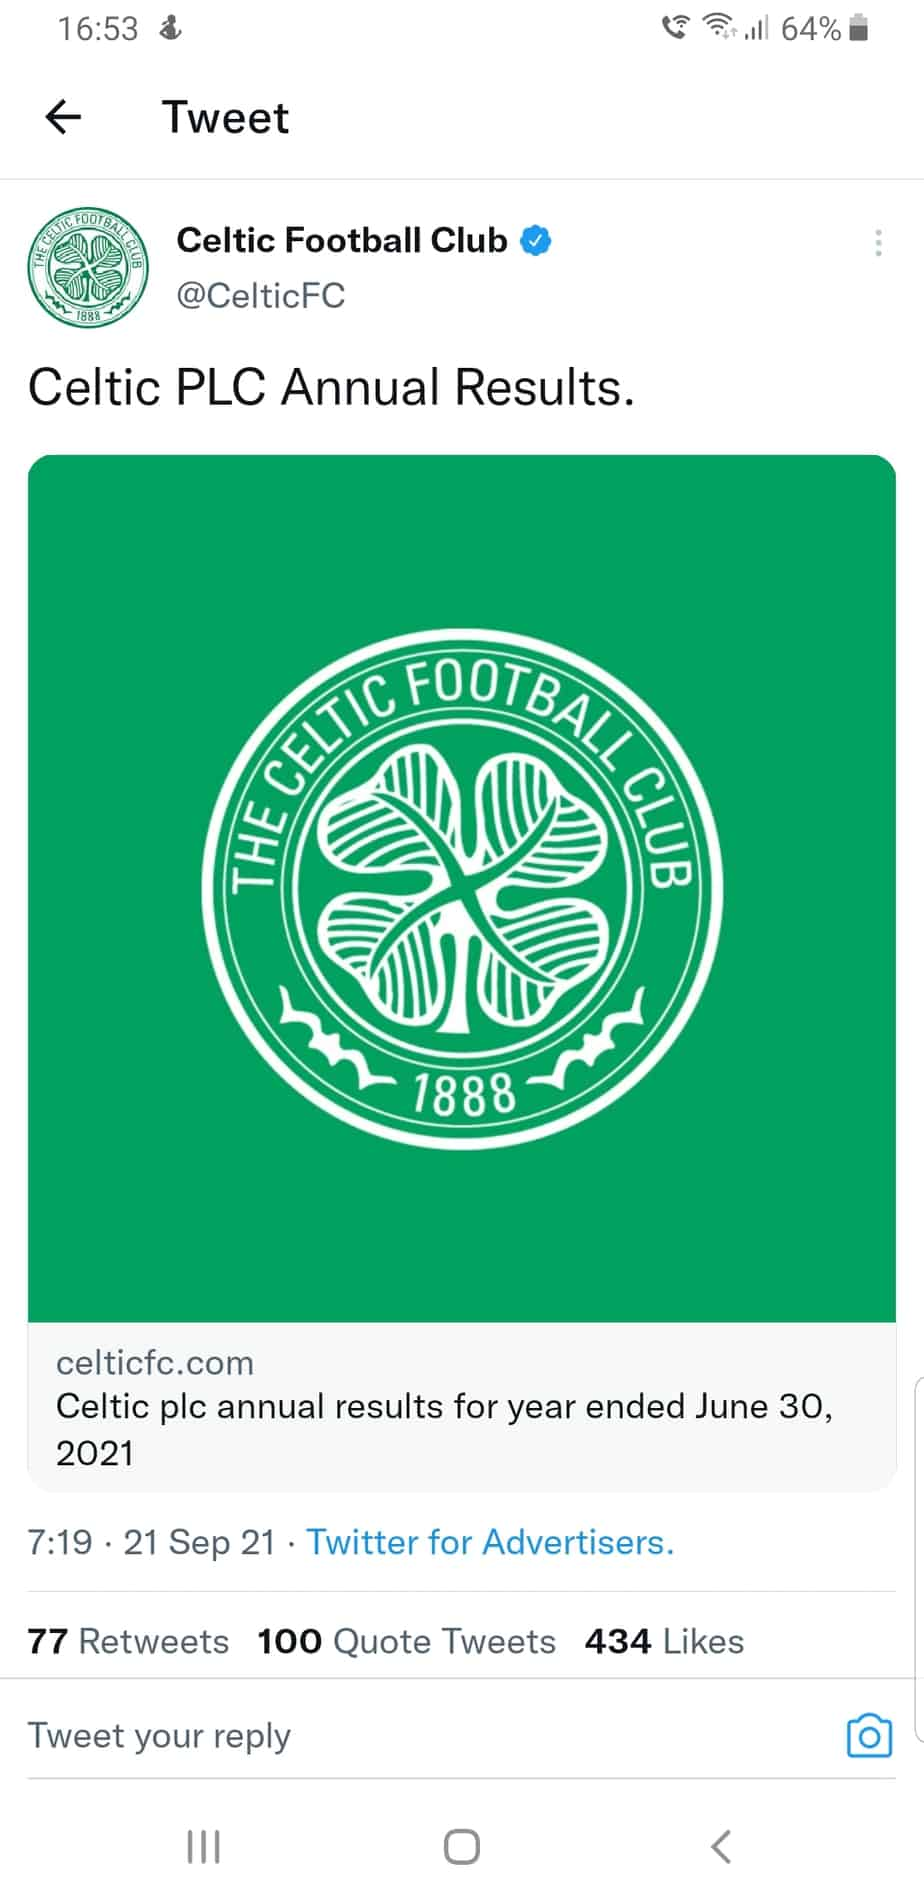 Rugger Guy looks at Celtic's year end accounts for 2021